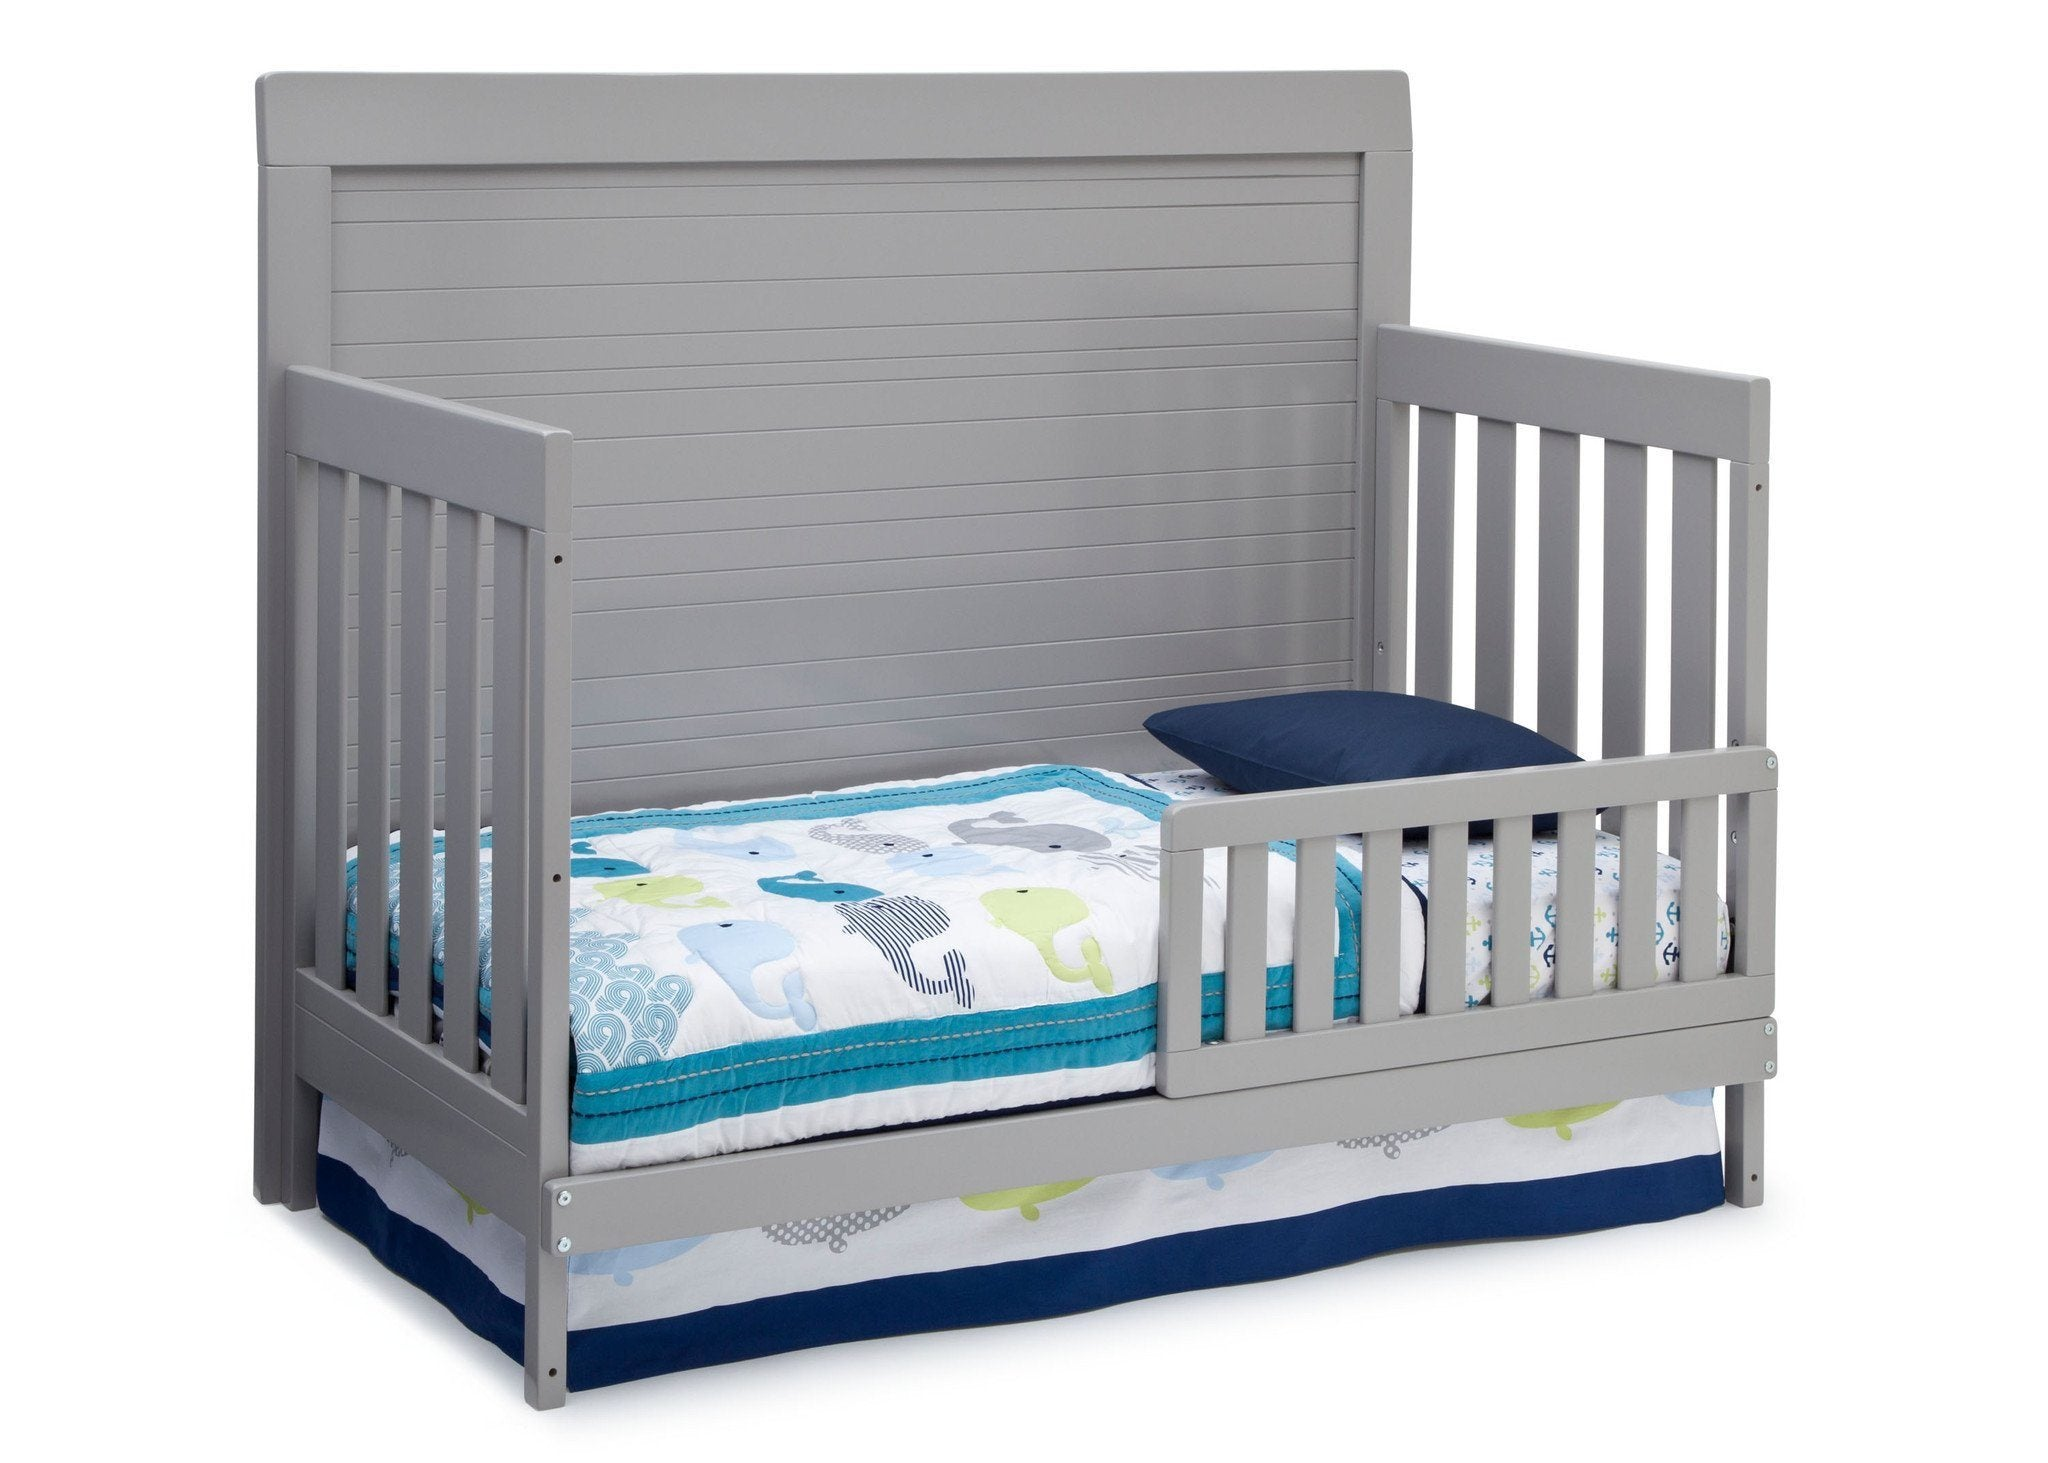 Simmons Kids Grey (026) Rowen Crib (320180), Side View with Toddler Bed Conversion a3a